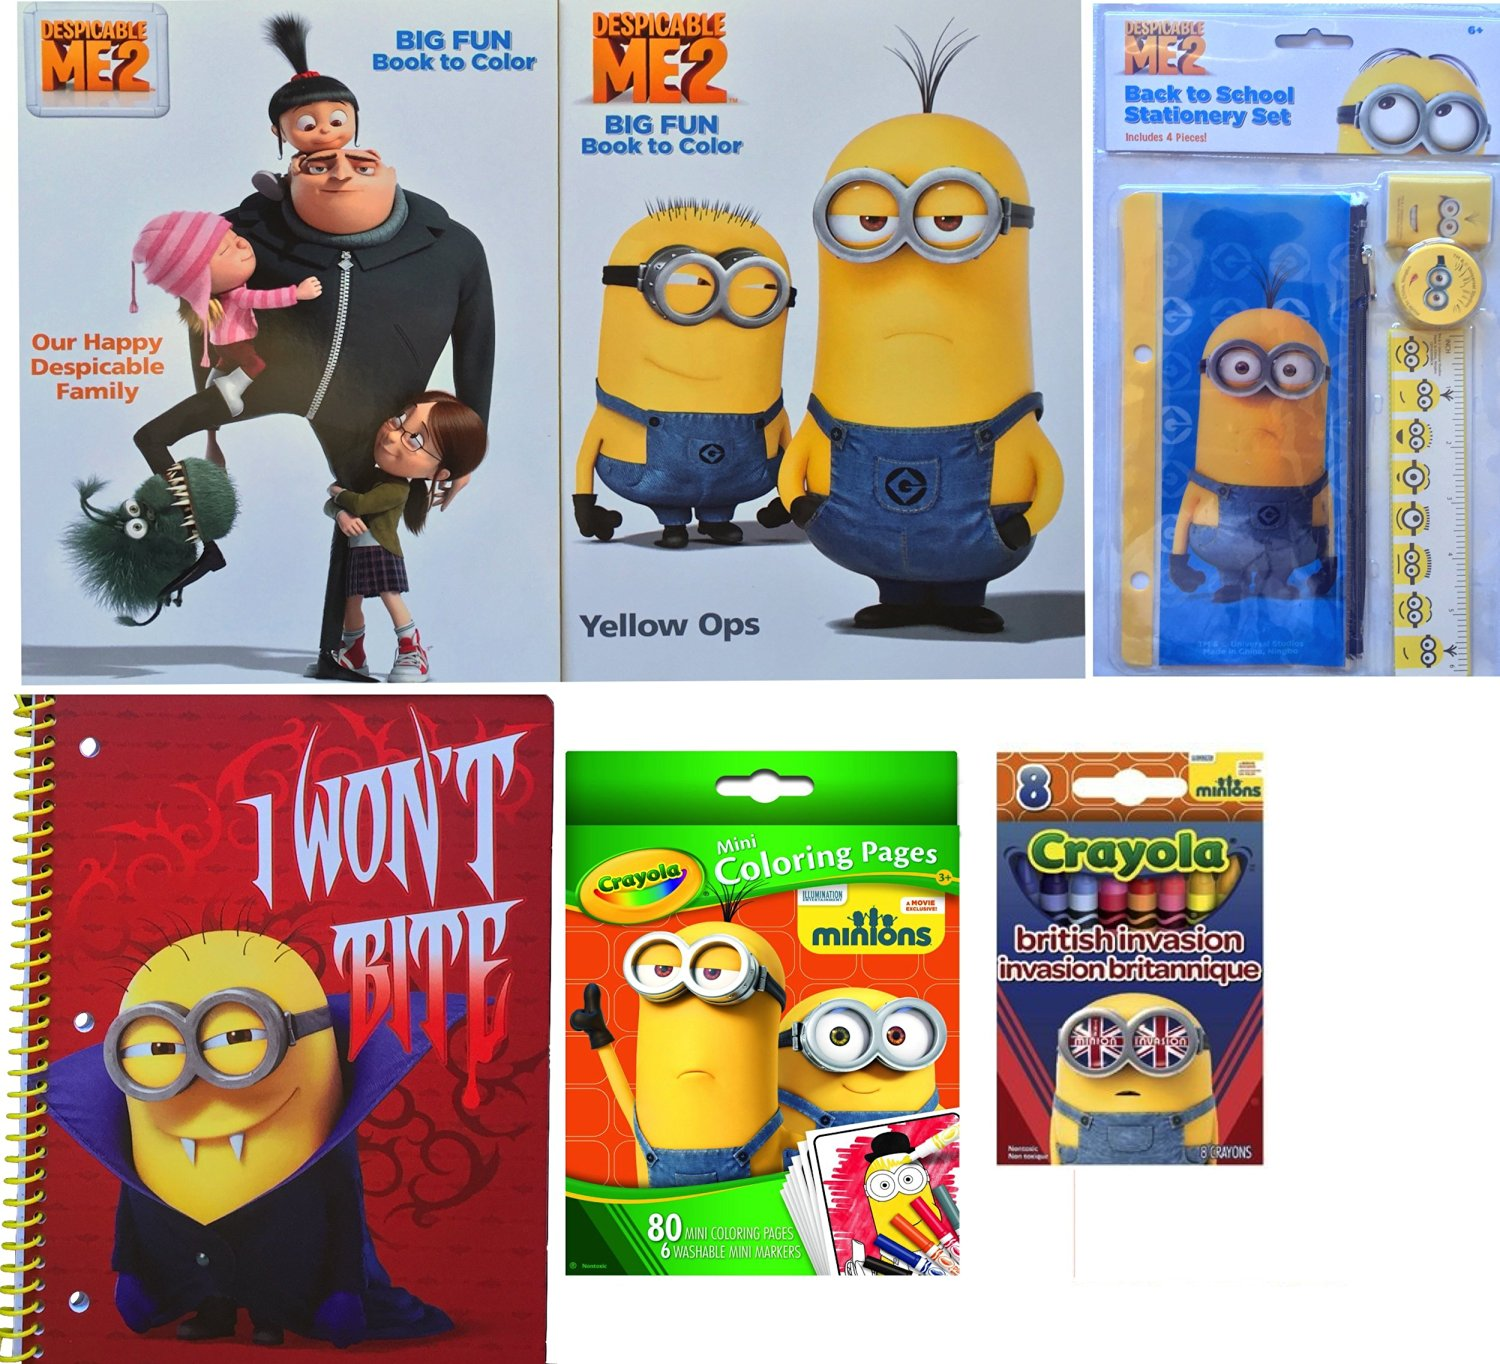 Minions Movie Exclusive Arts and Crafts Gift Includes Minions Jumbo Coloring Books , Minions Back to School Stationary Set, Minions Mini Coloring Pages, Minions Spiral Notebook with Crayons